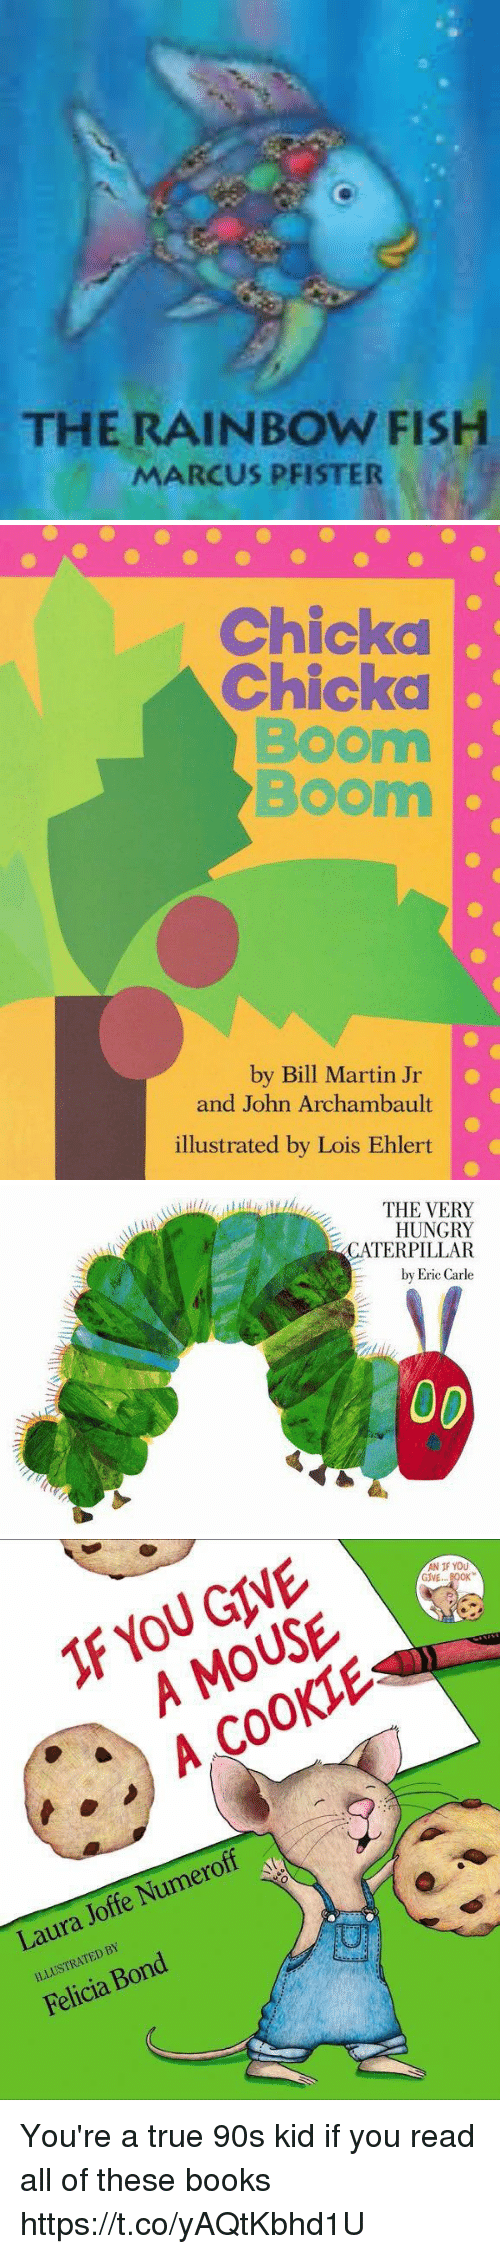 Books, Funny, and Hungry: THE RAINBOW FISH  MARCUS PFISTER   Chickd  Chicka  Boom  Boom  by Bill Martin Jr  and John Archambault  illustrated by Lois Ehlert   THE VERY  HUNGRY  CATERPILLAR  by Eric Carle   F YOU GIVE  A MOUSE  A COOKIE  AN IF YOU  GIVE... BOK  Laura Joffe Numeroff  ILLUSTRATED BY  Felicia Bond You're a true 90s kid if you read all of these books https://t.co/yAQtKbhd1U